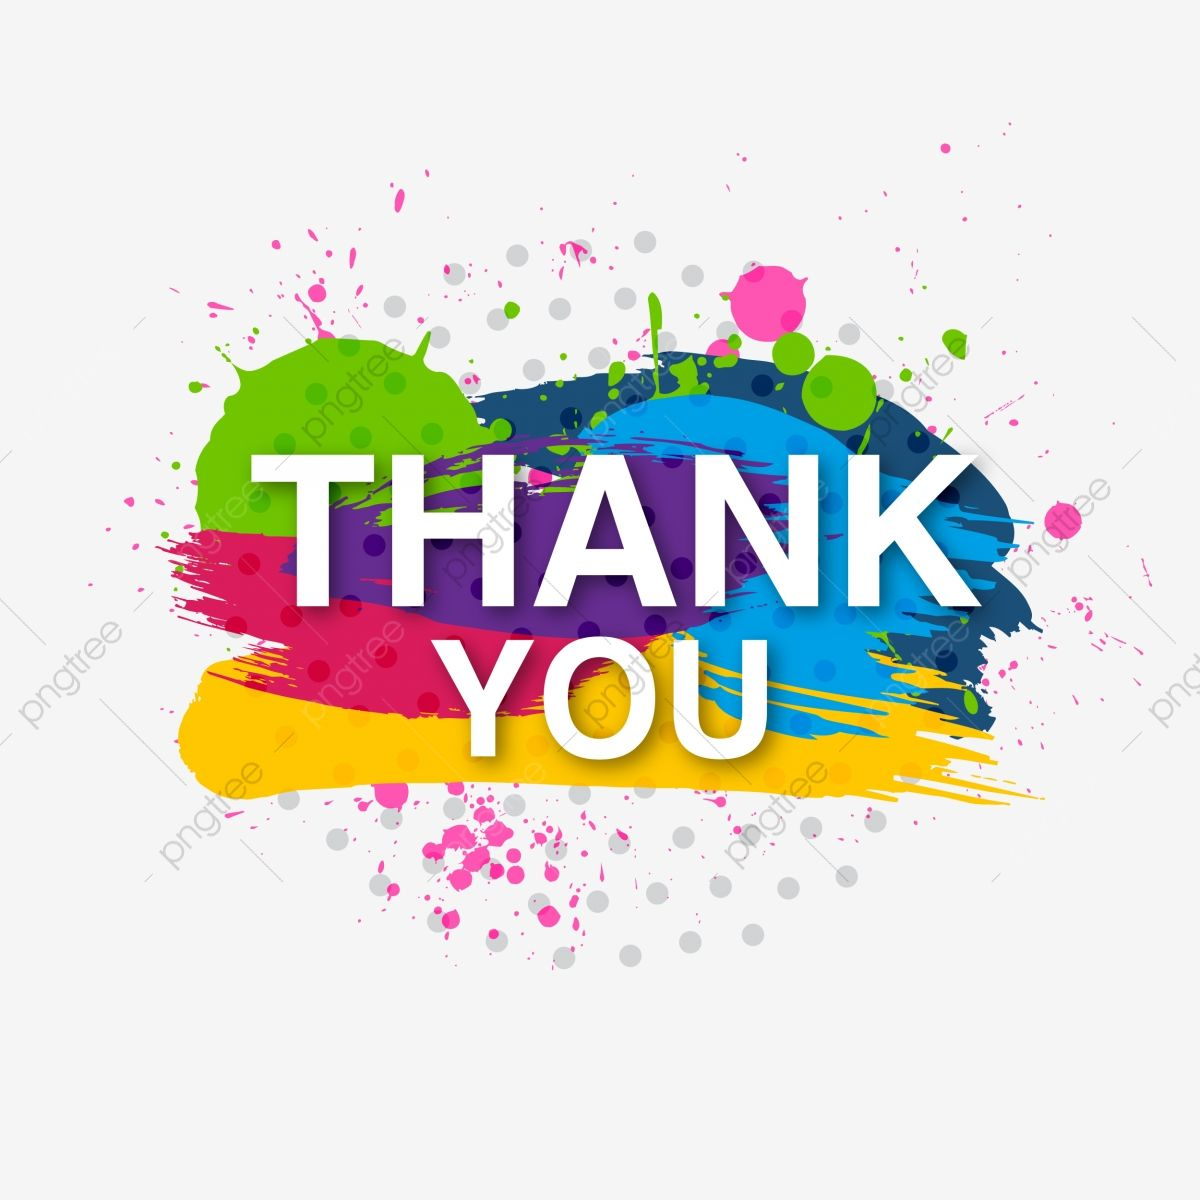 Decorative Colorful Thank You Invites Brush Splash You Thank Card Png And Vector With Transparent Background For Free Download Modern Card Design Powerpoint Background Design Paint Splash